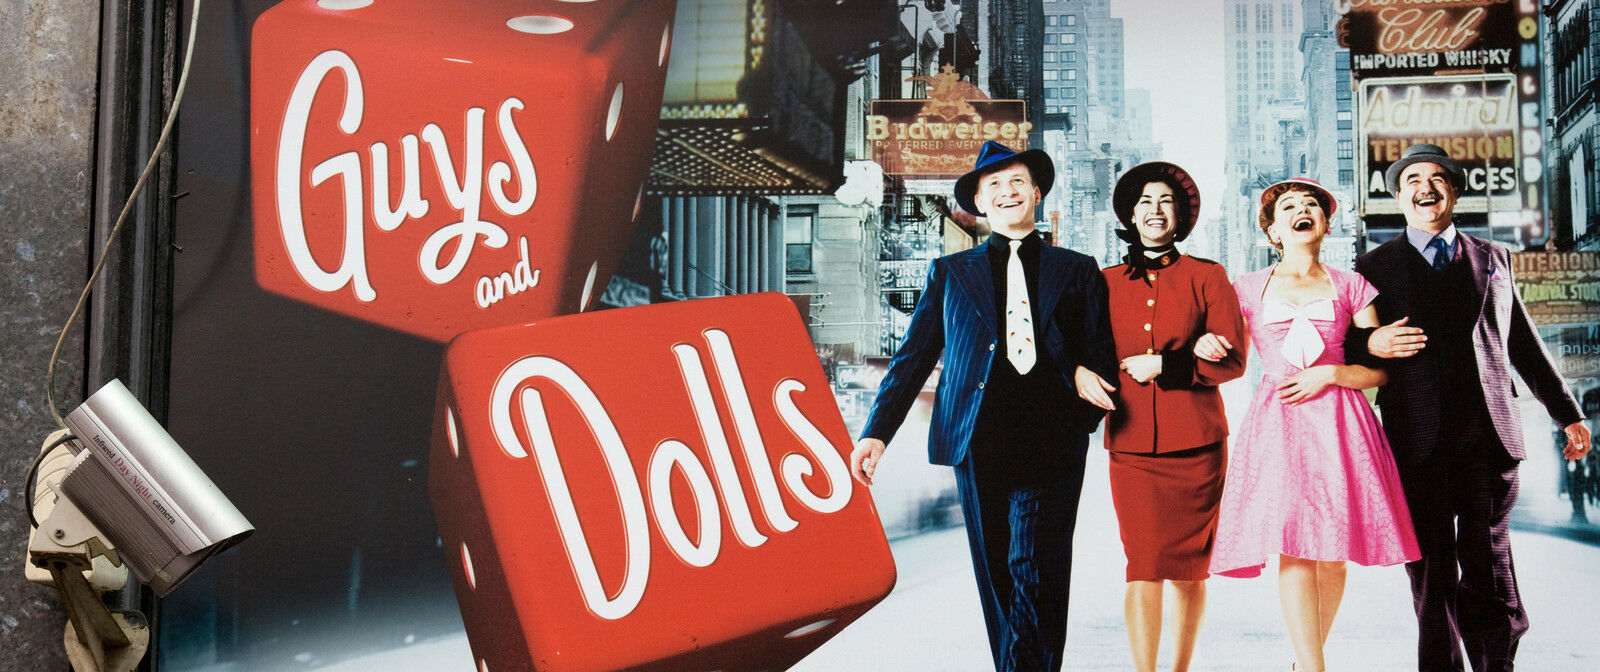 Guys and Dolls Houston